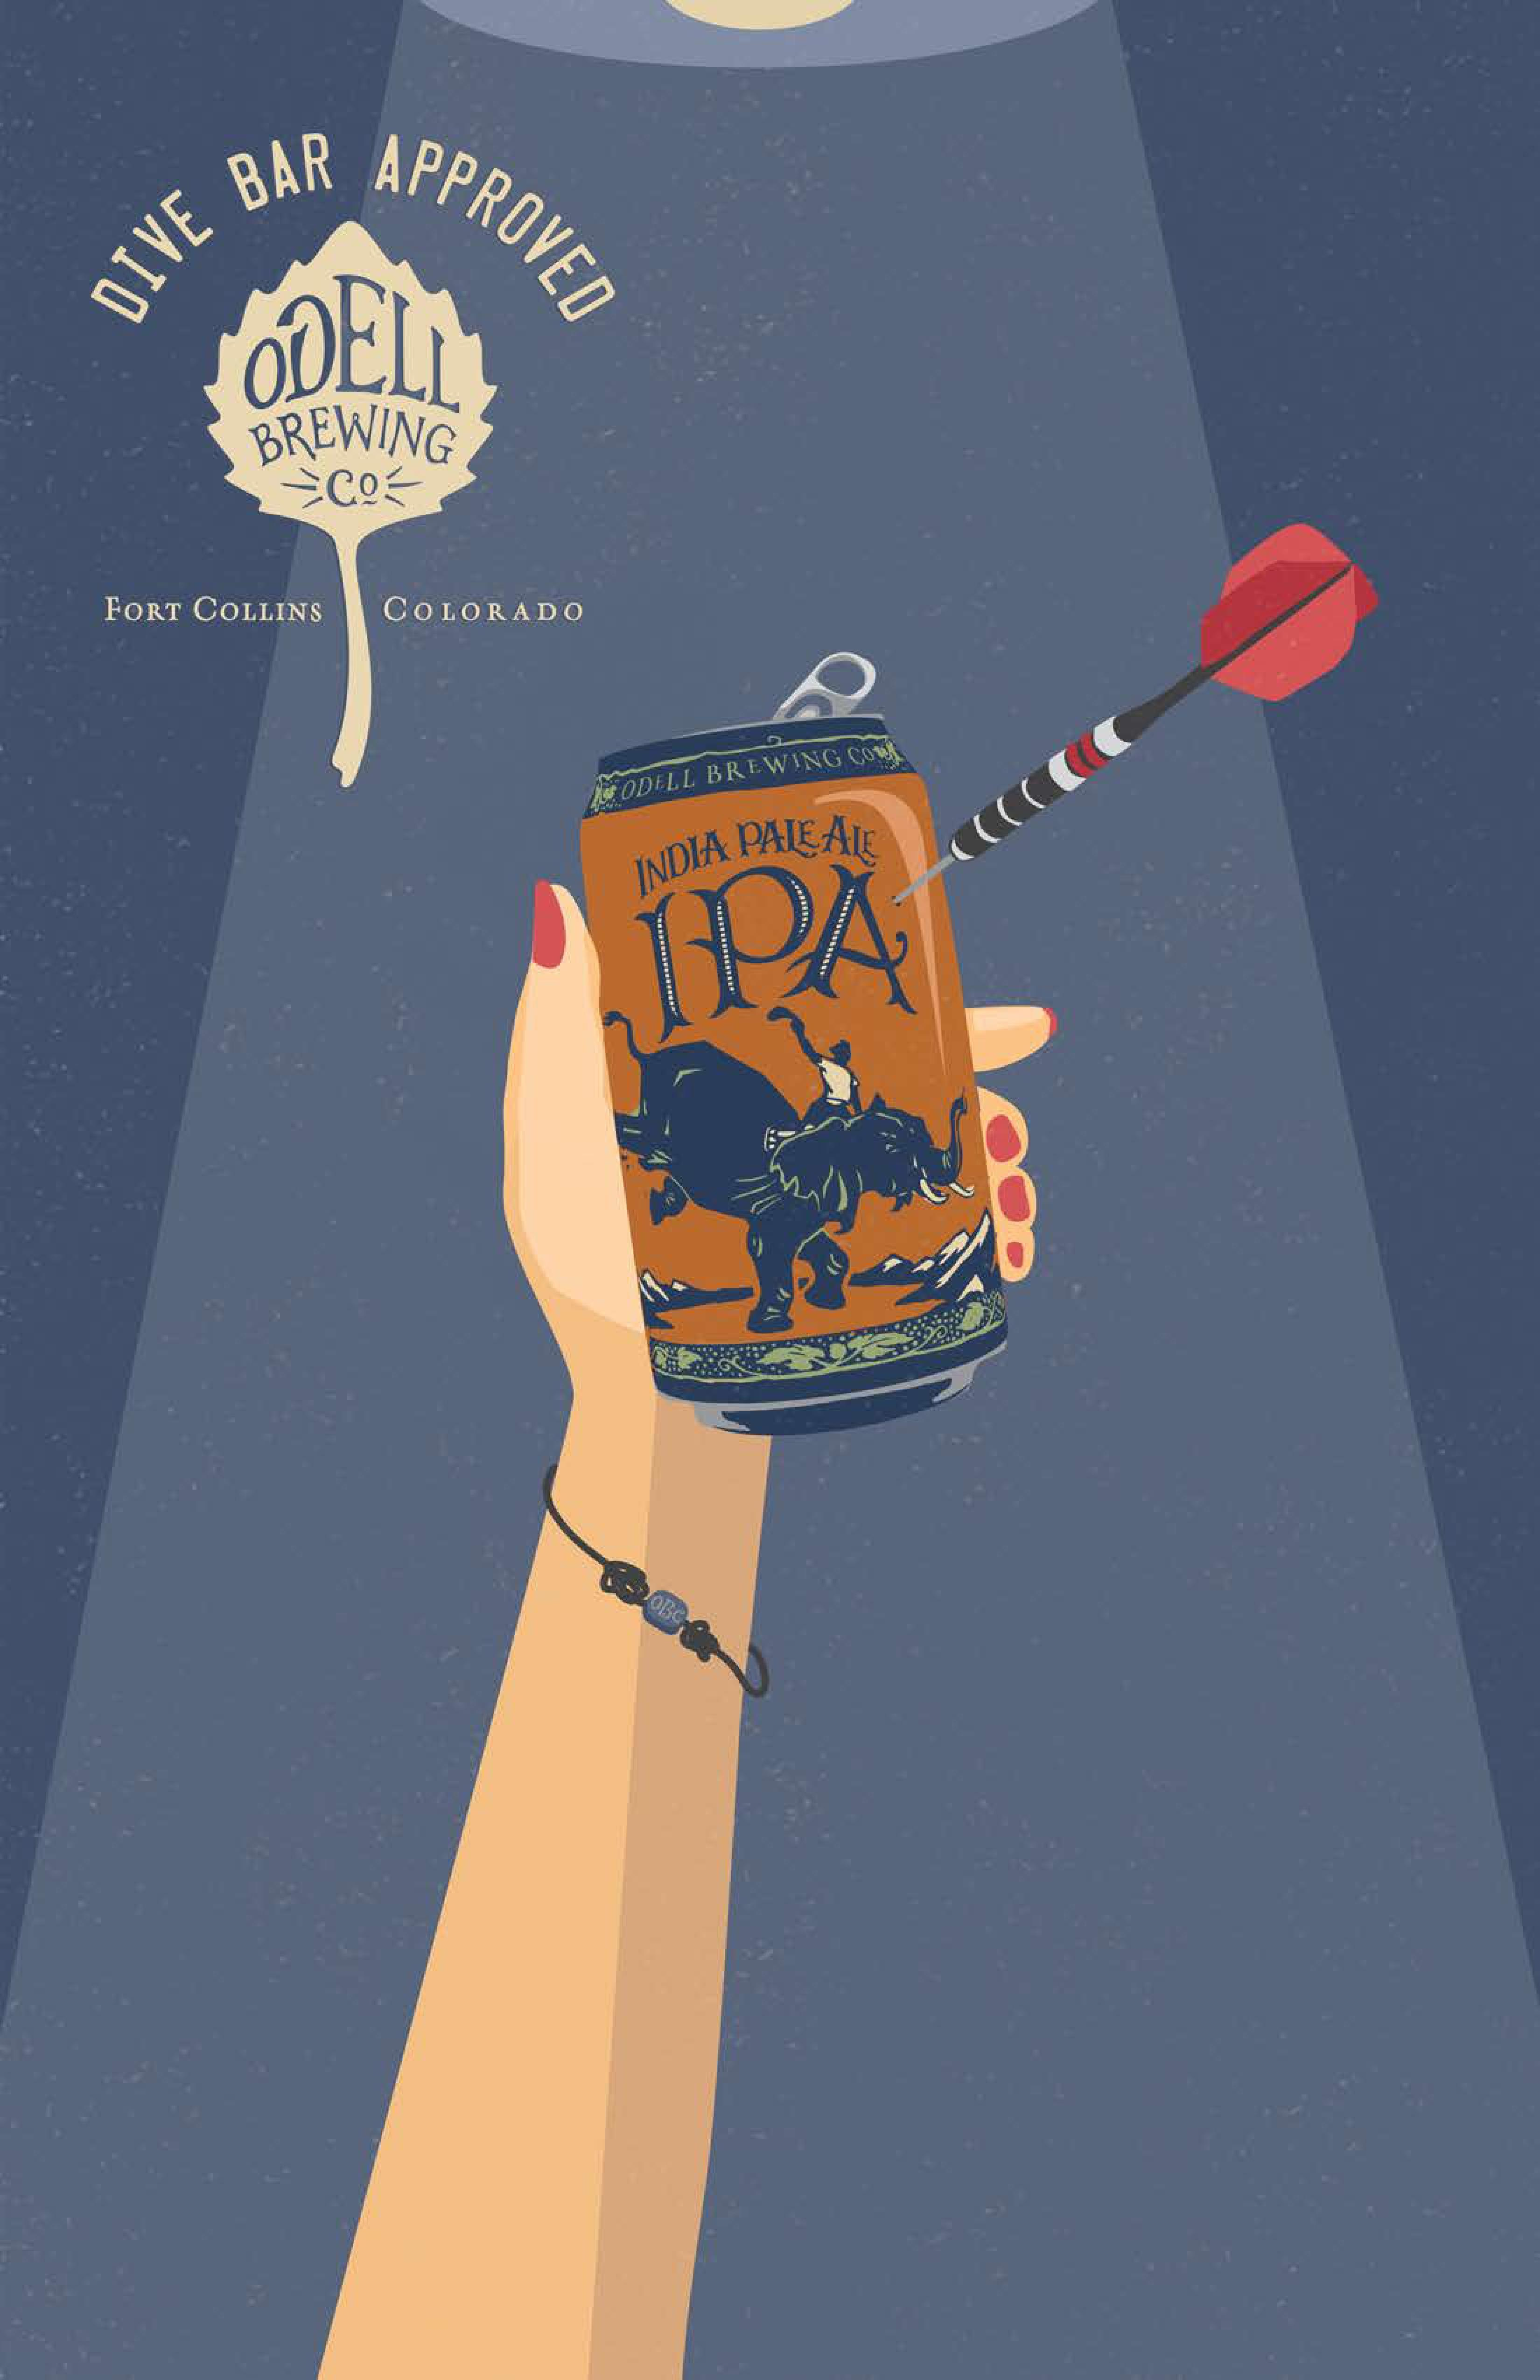 Odell Brewing Co Print Ad - Odell IPA Day - Dive Bar